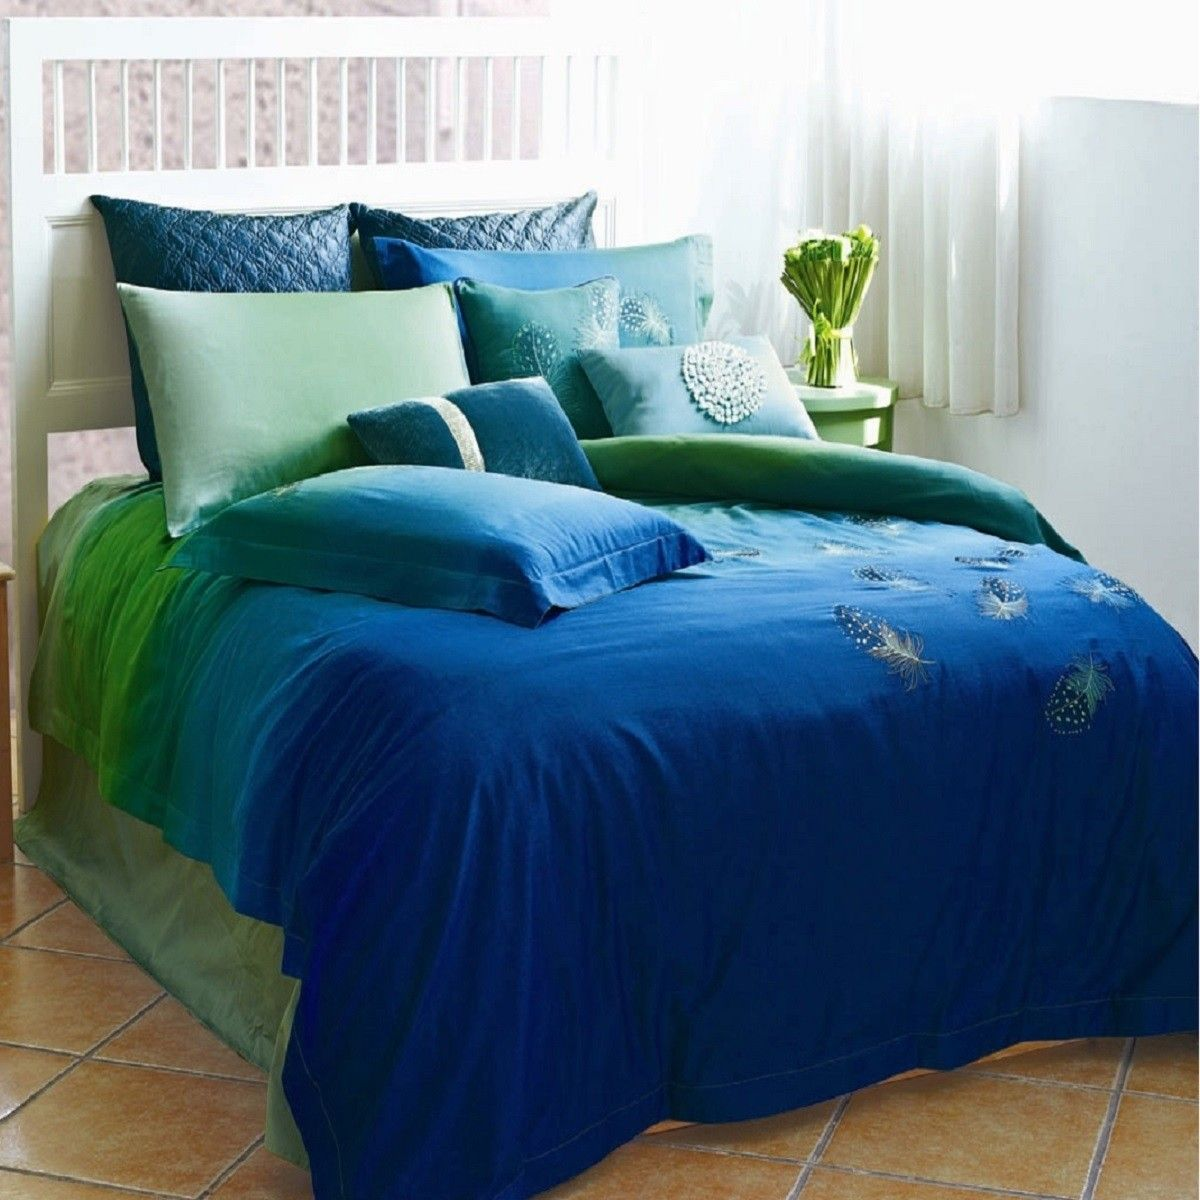 Peacock Feathers Duvet Cover Set Peacock Linens Bedding